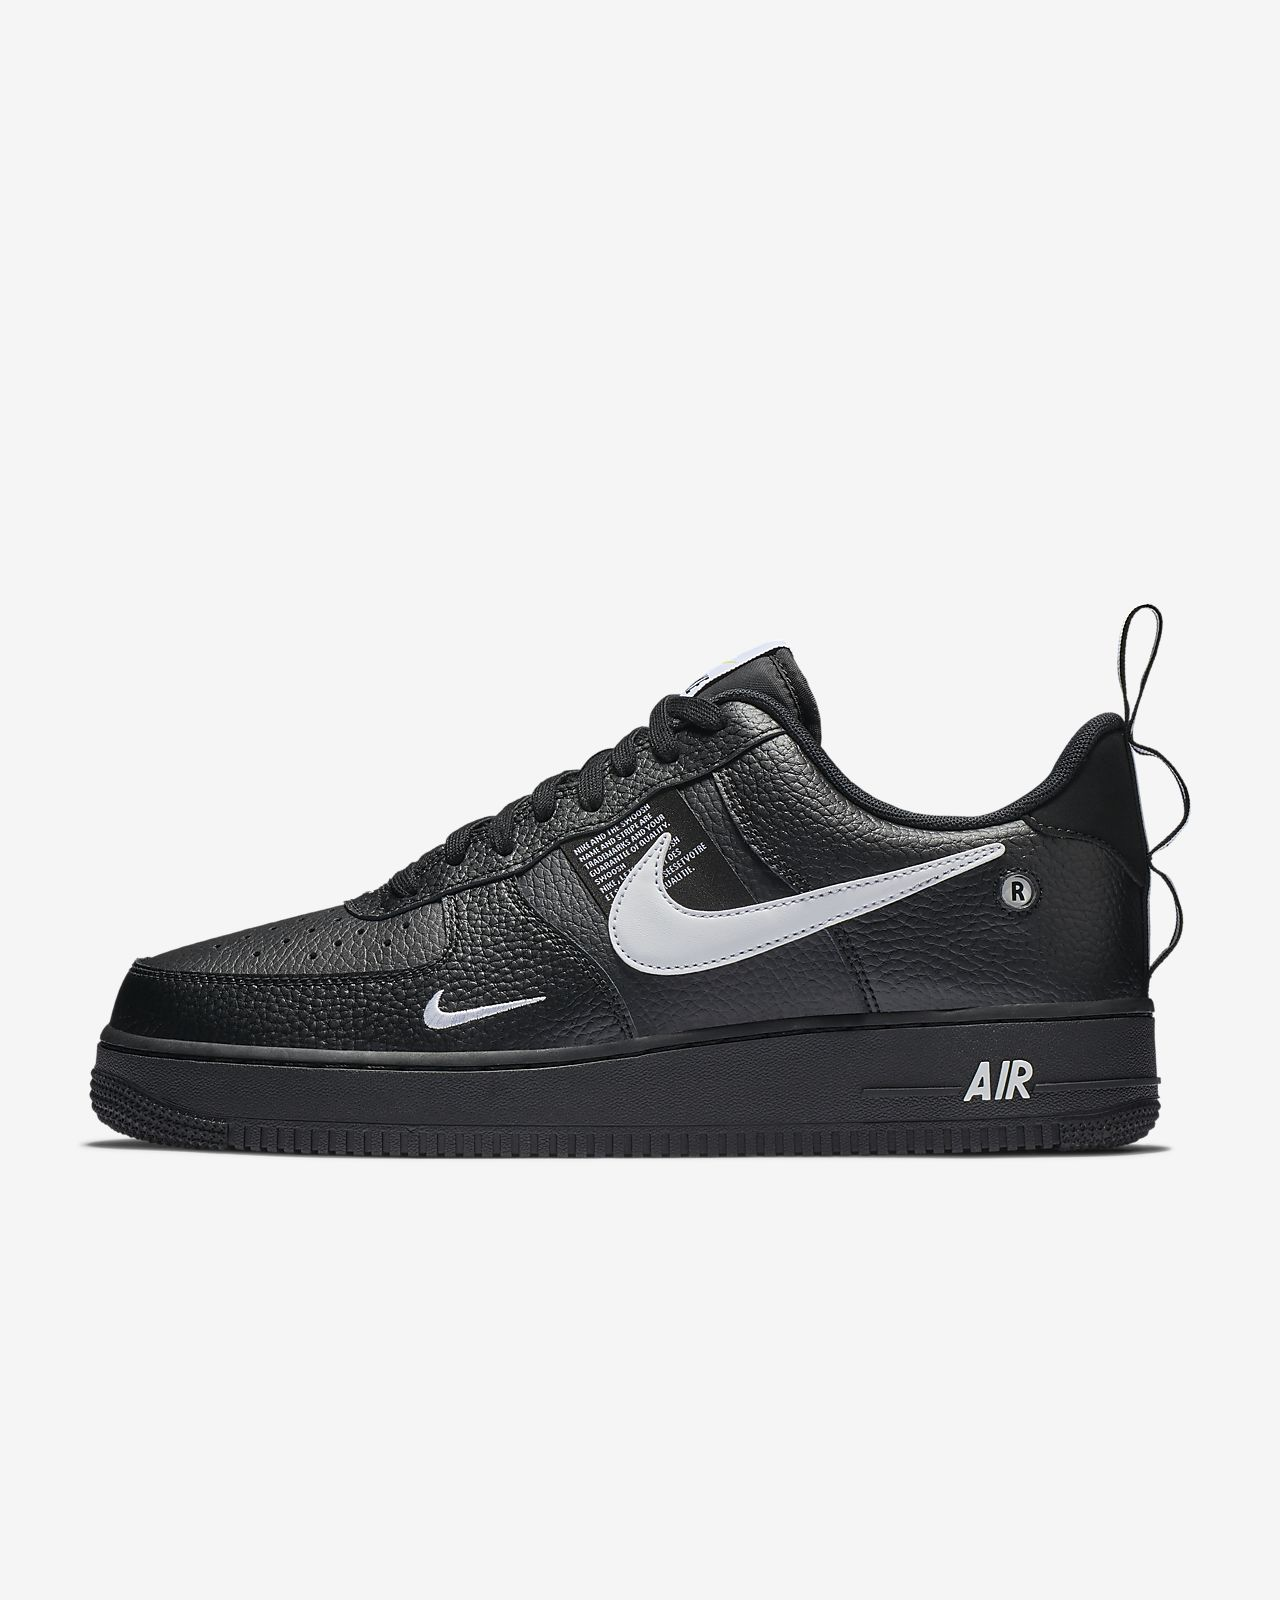 91dfad77579 Nike Air Force 1  07 LV8 Utility Men s Shoe. Nike.com AT